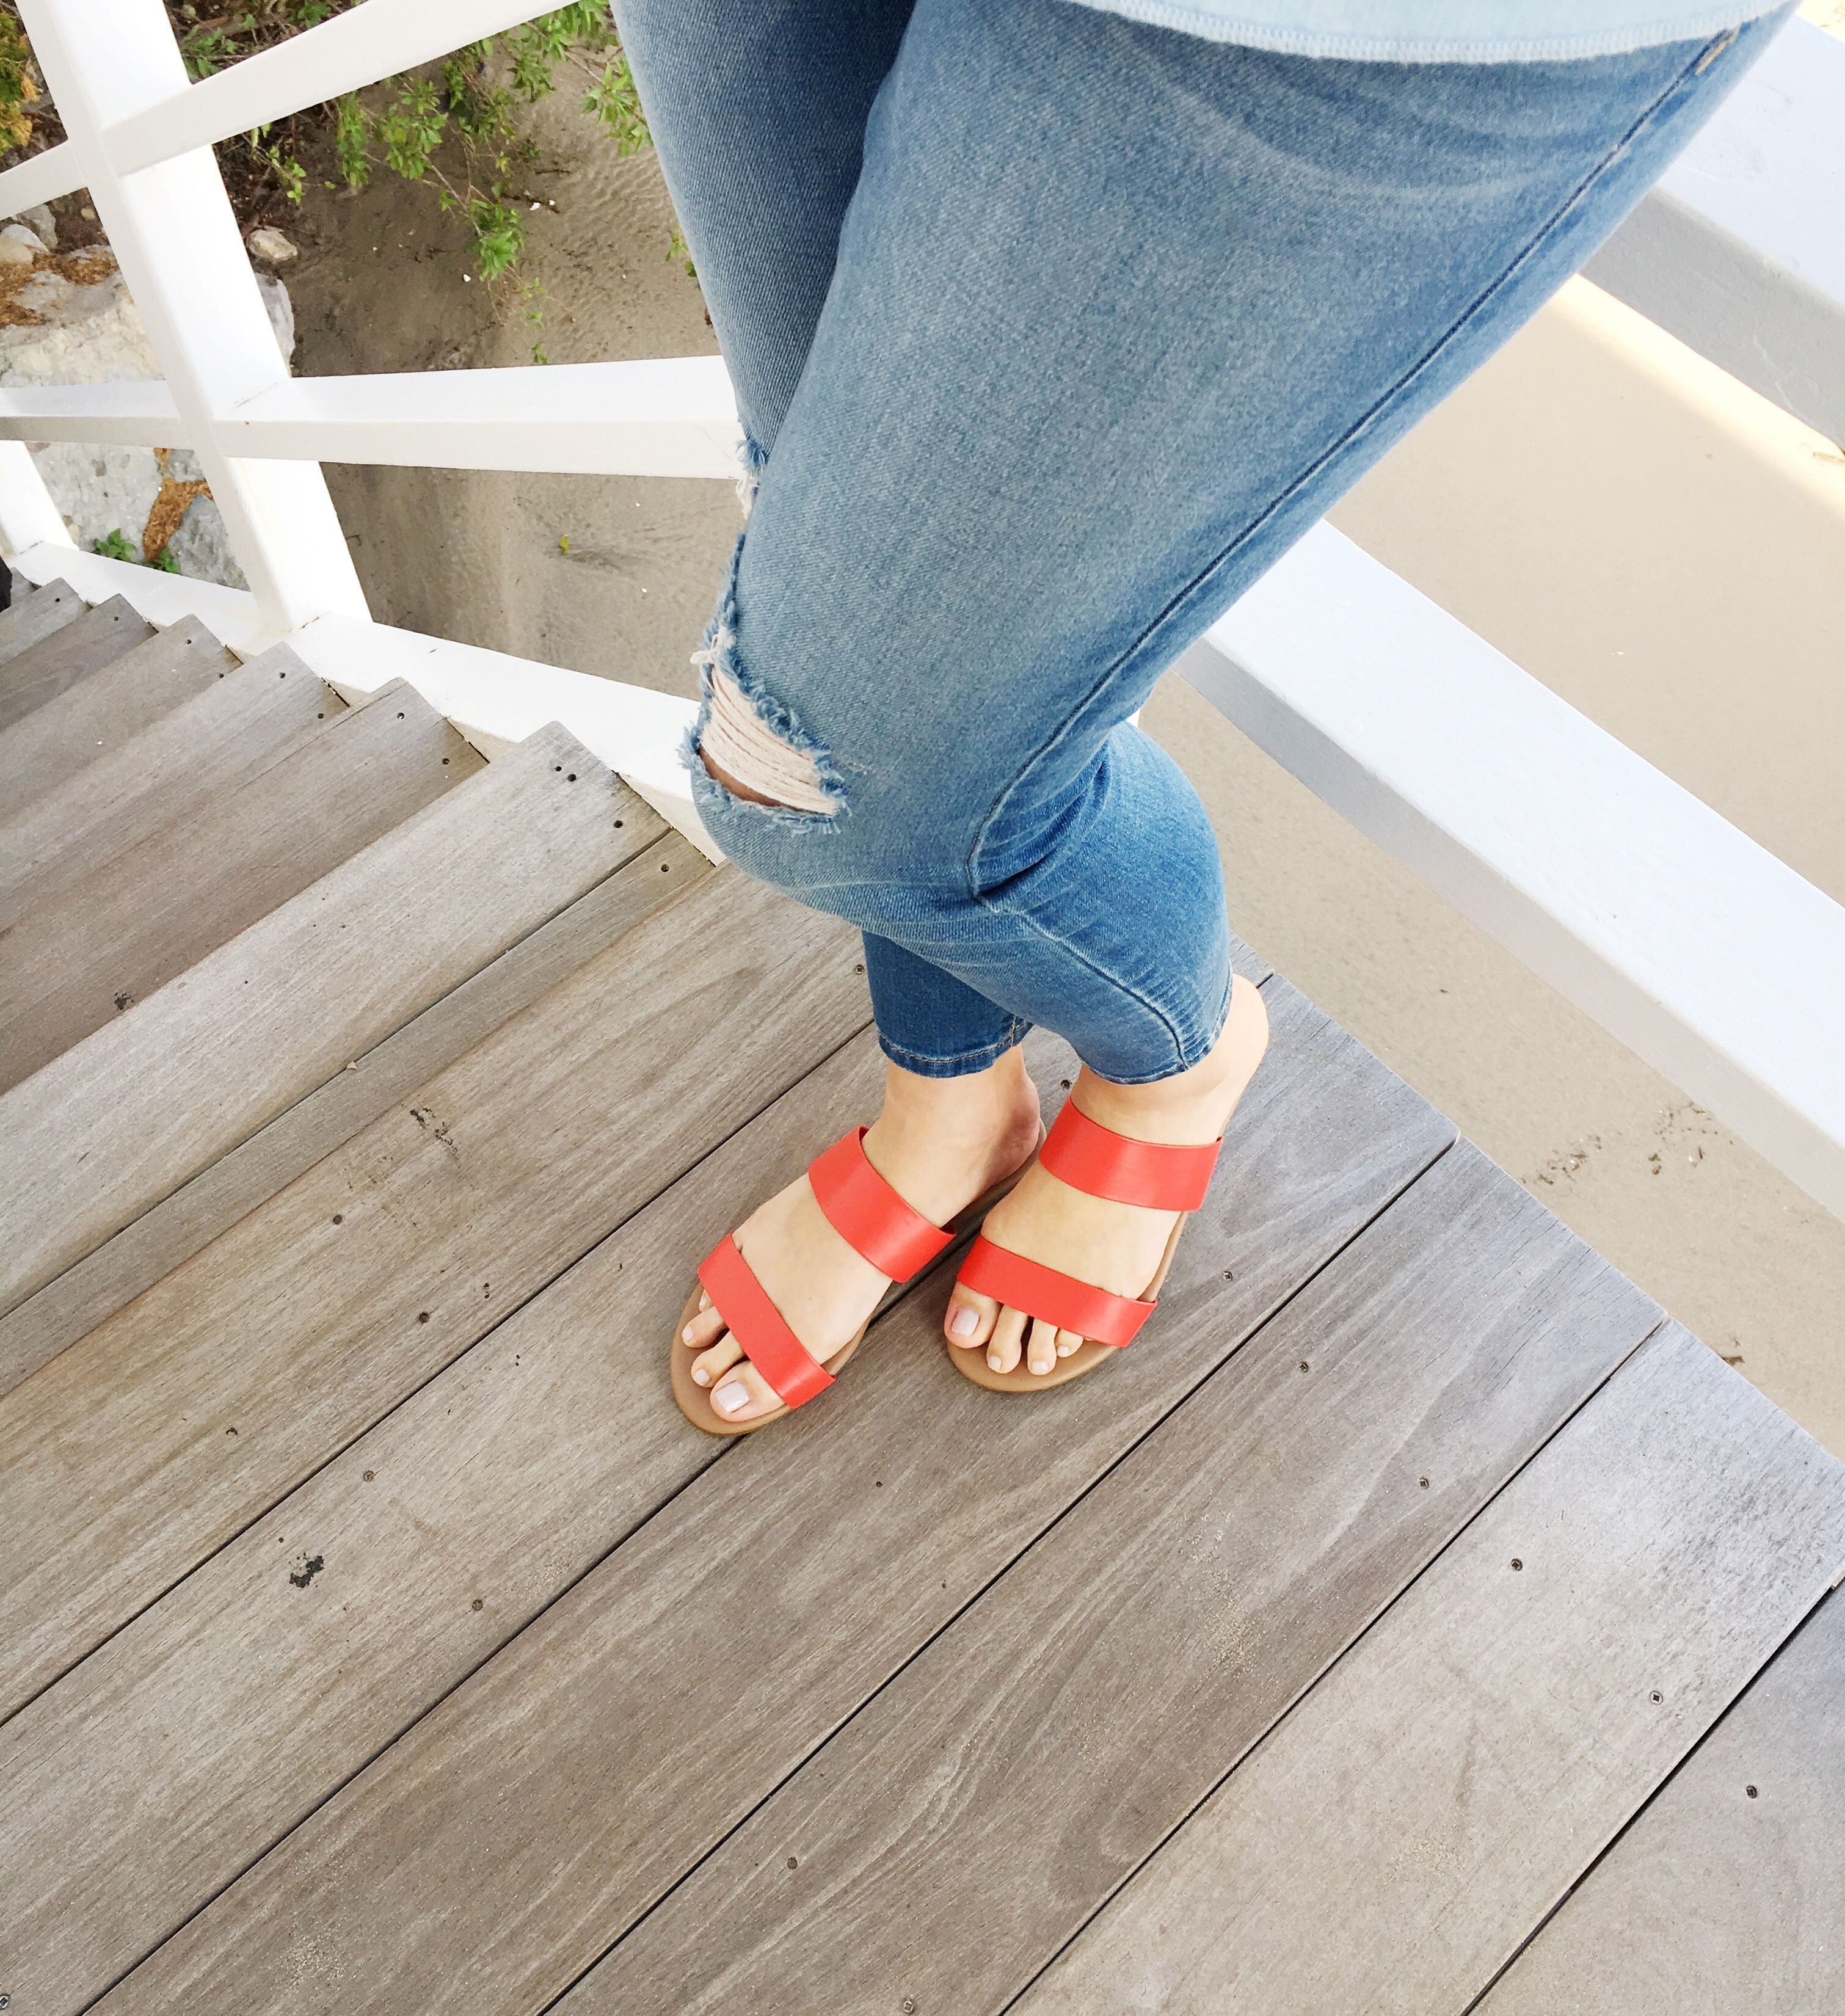 04ed7dfd906eb Lauren Conrad wearing a pair of LC Lauren Conrad for Kohl s Firefli Sandals  in Red